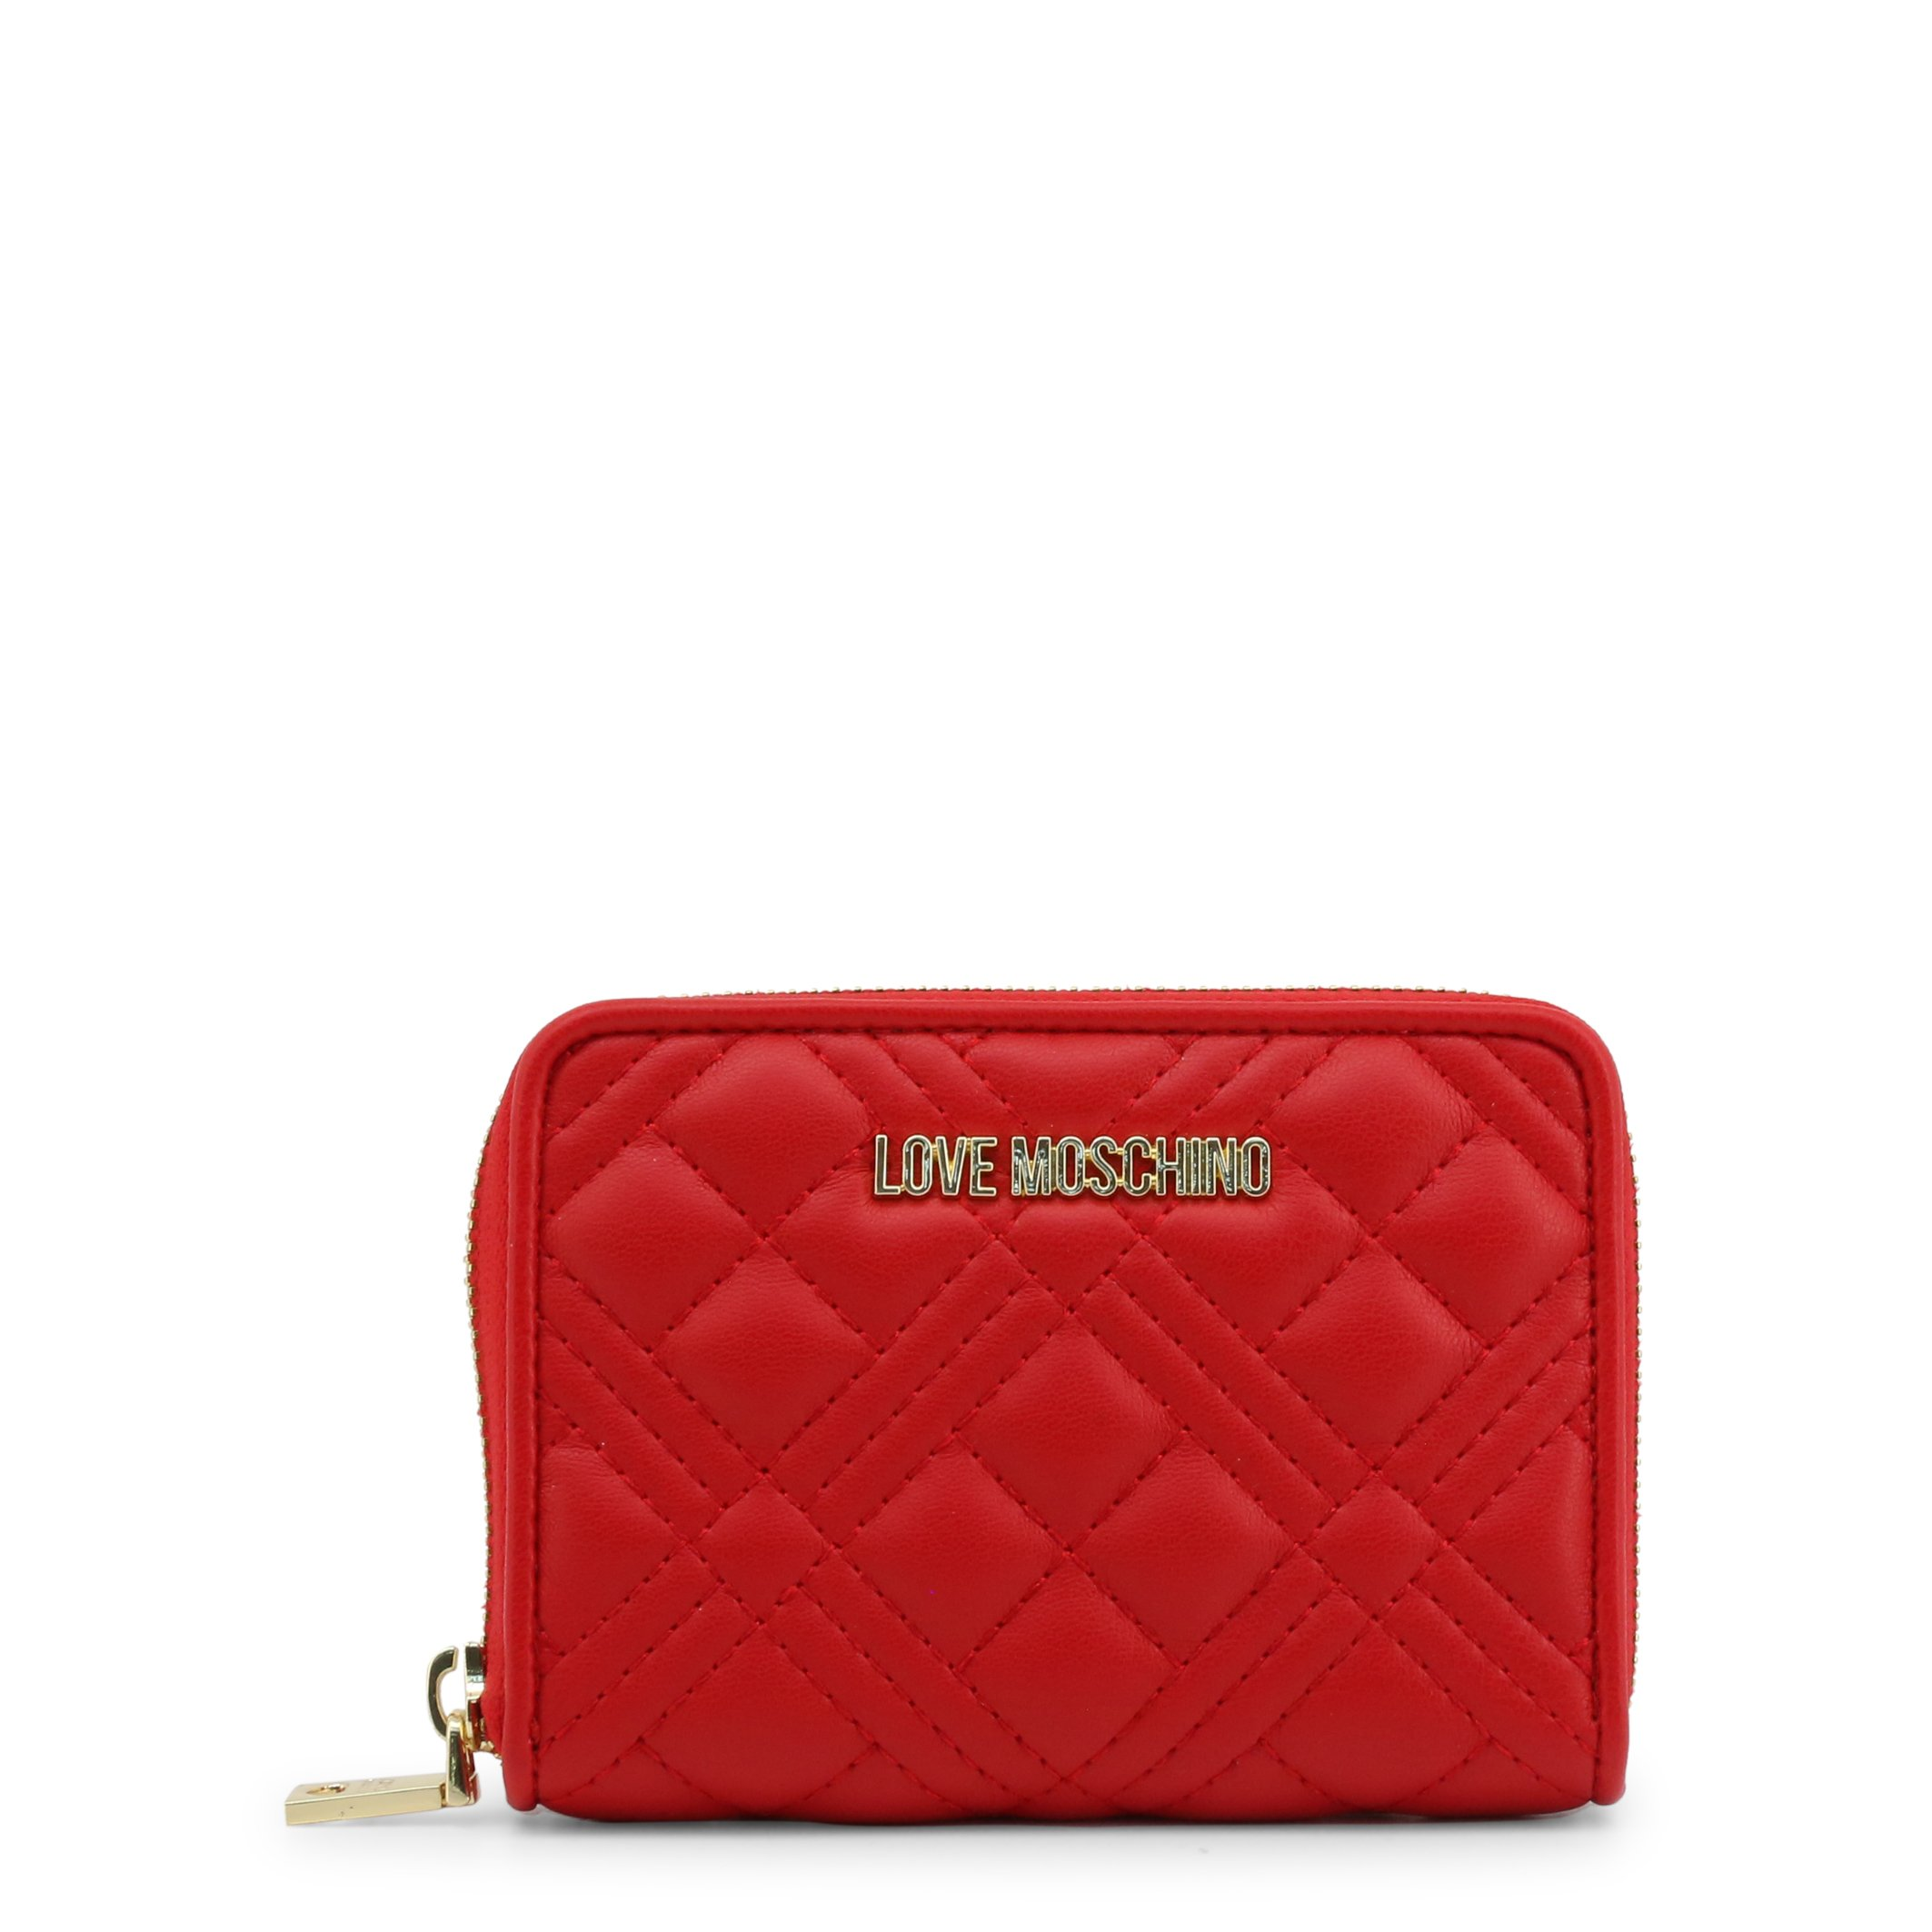 Love Moschino Women's Wallet Various Colours JC5602PP1CLA0 - red NOSIZE